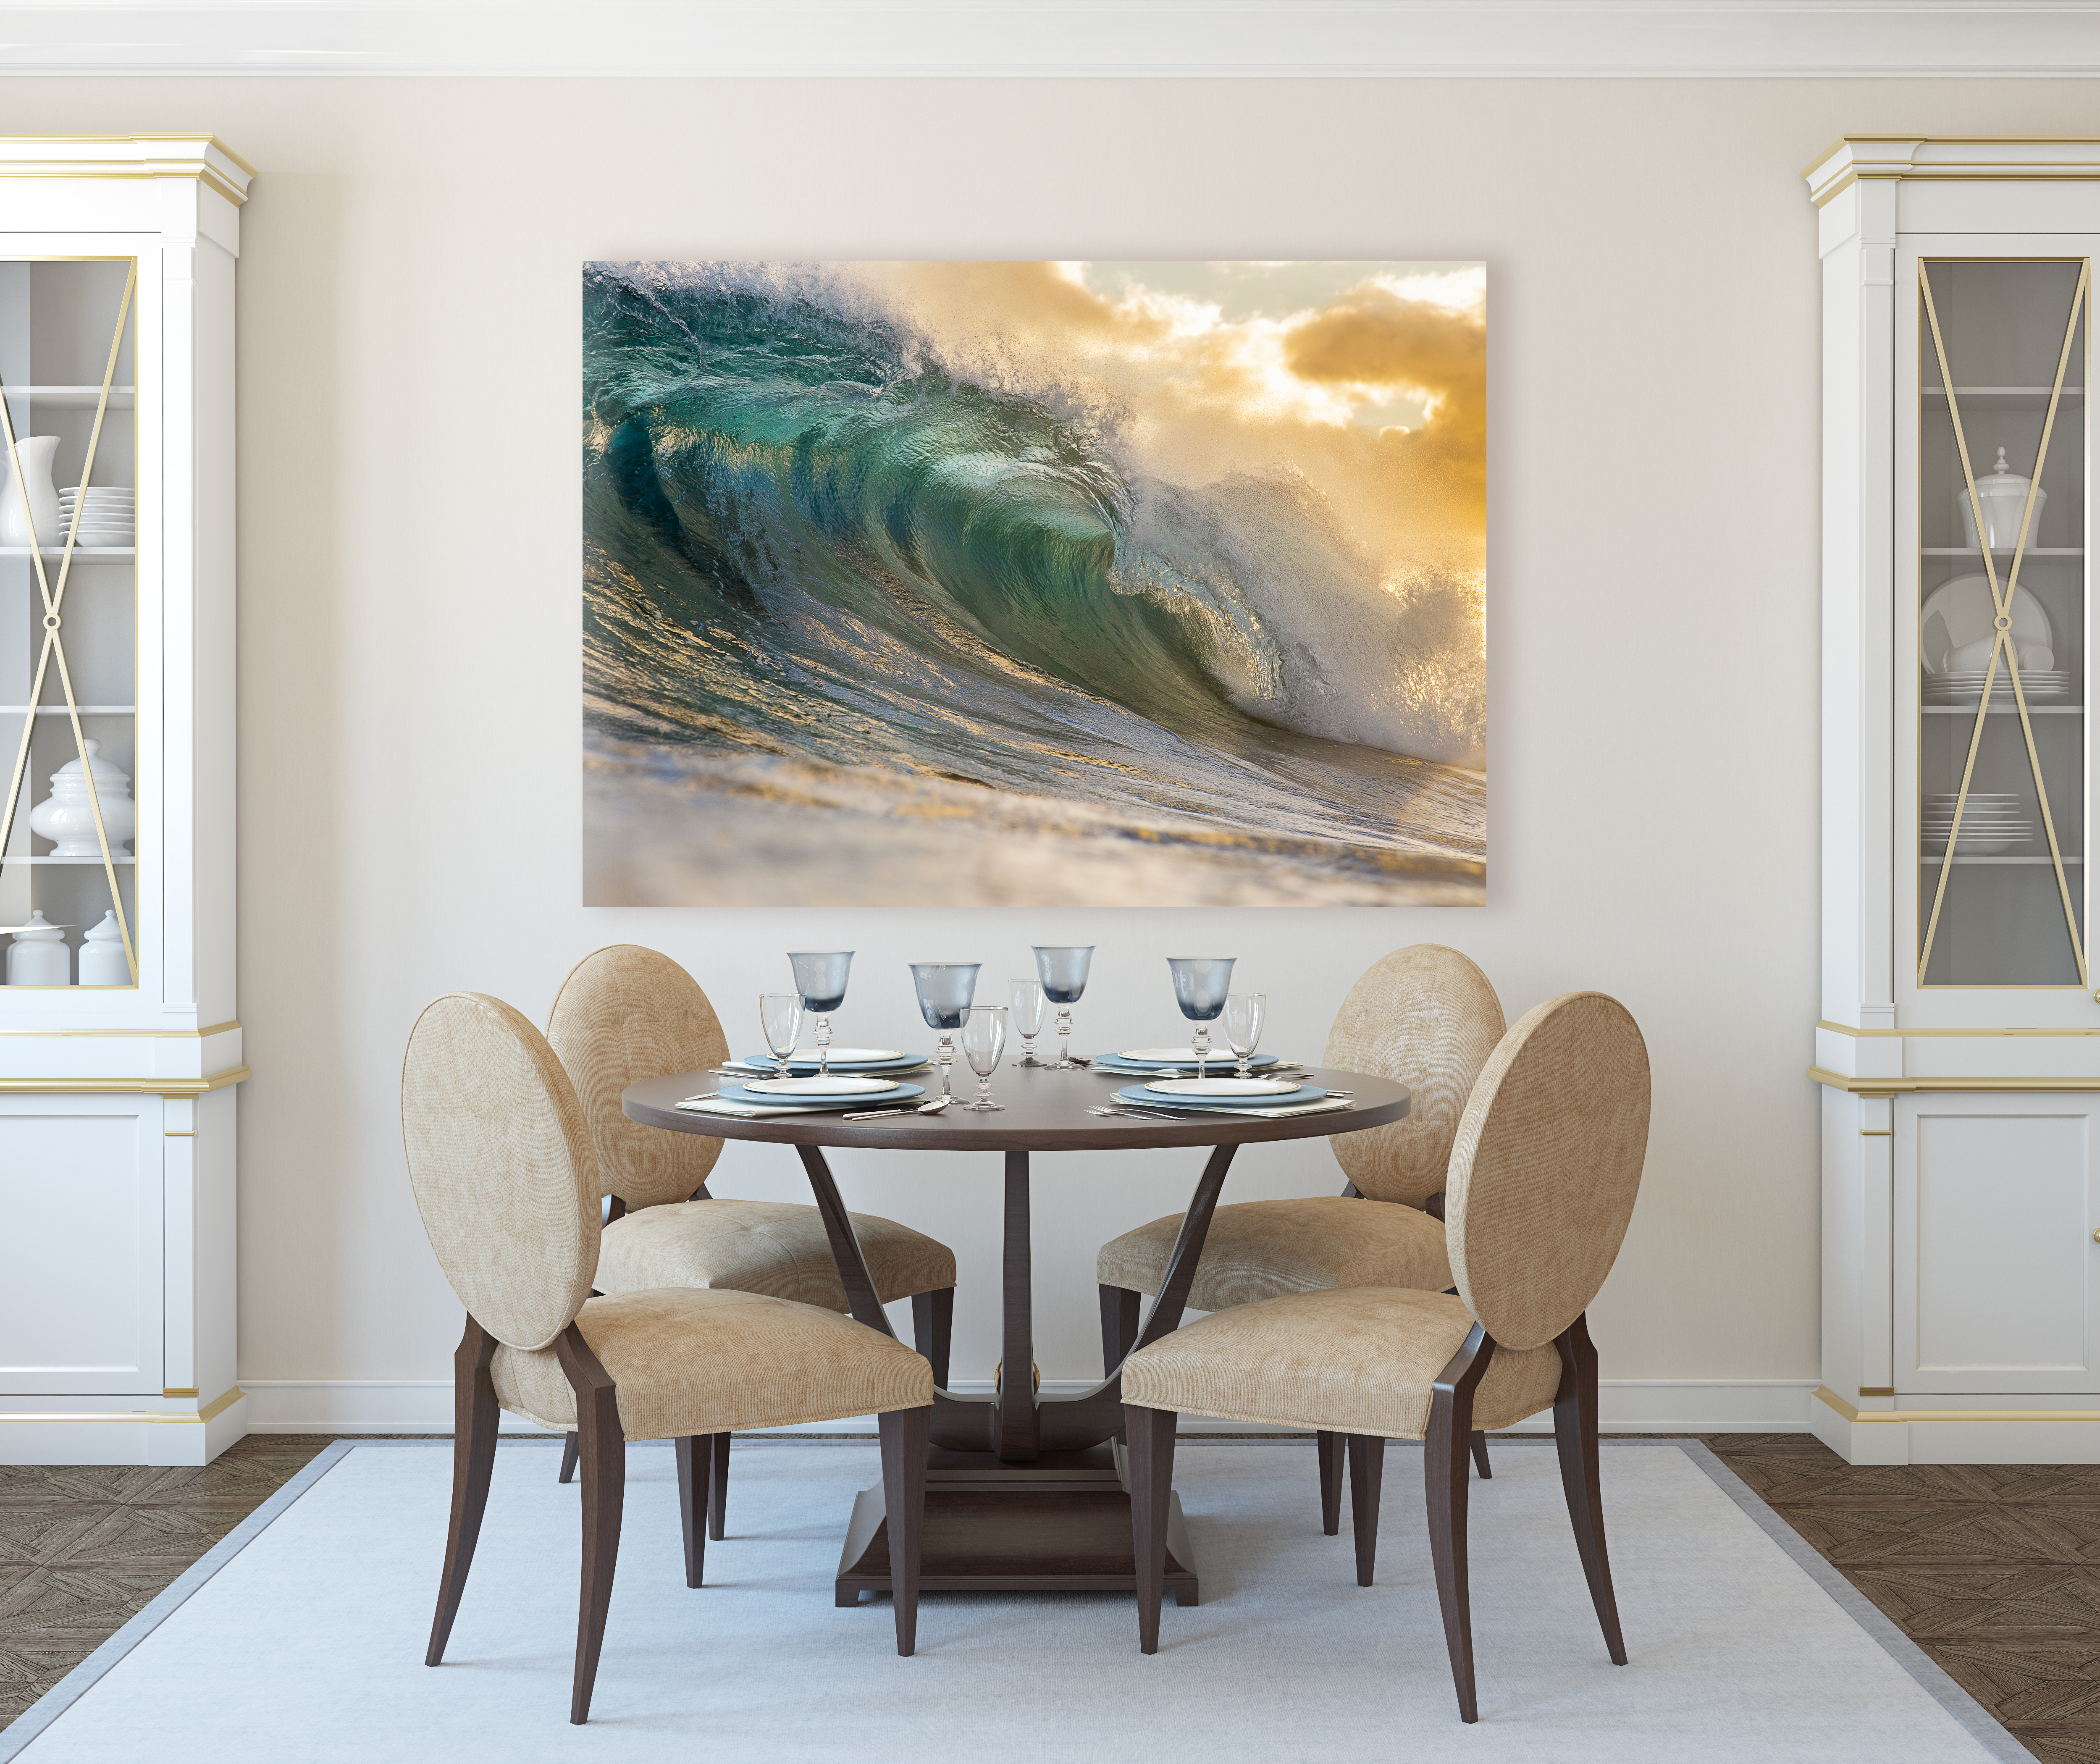 Transform your space with Art – Wave Photography